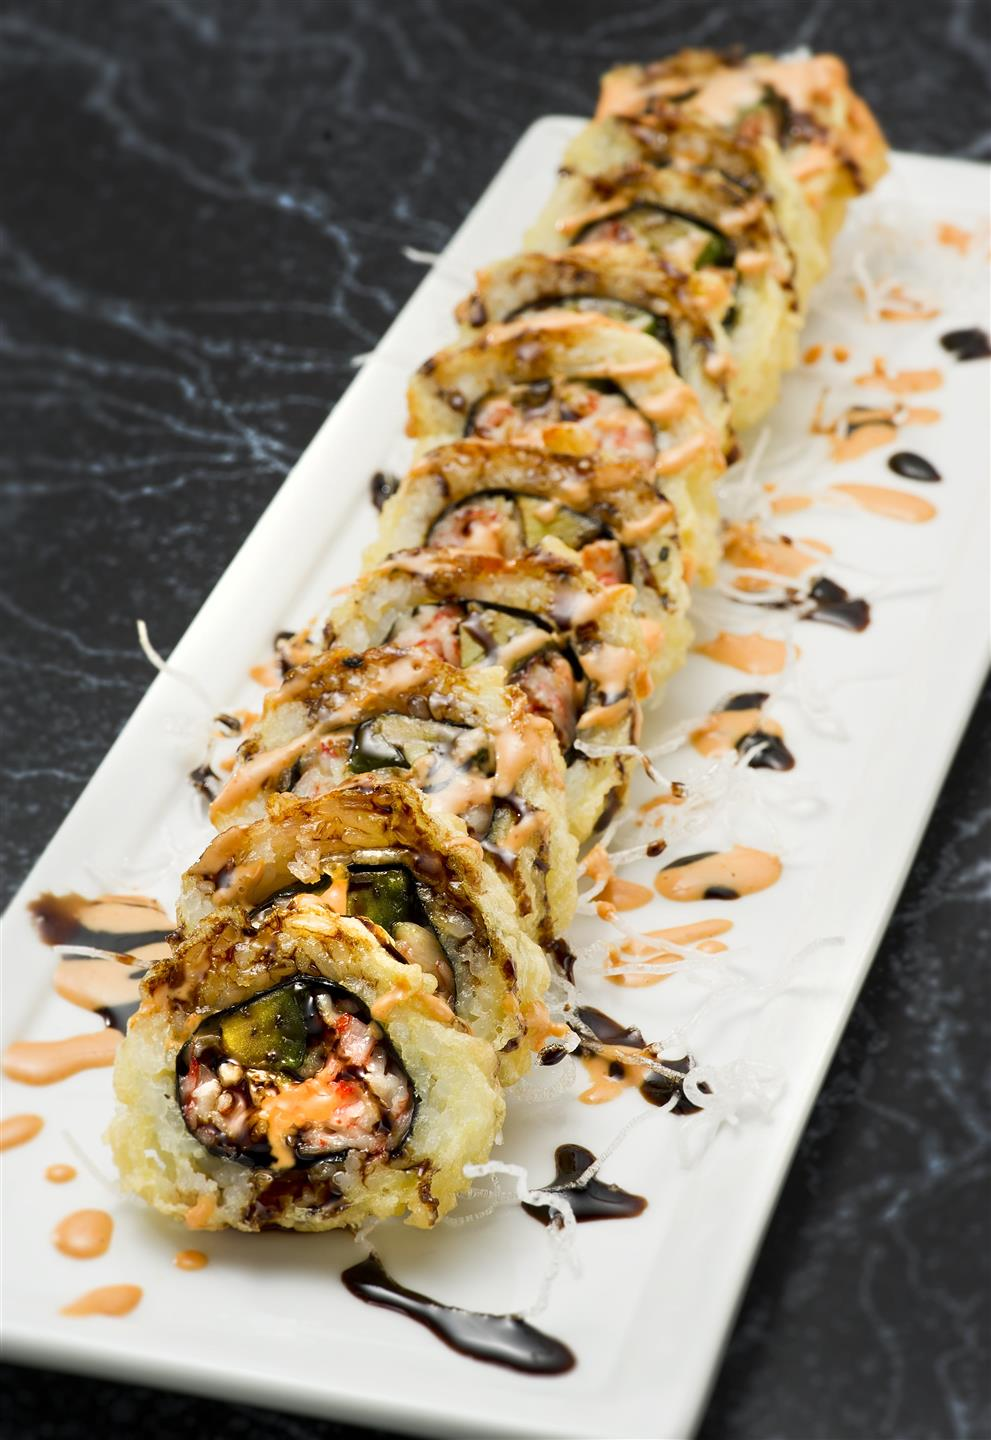 crab sushi roll with smoked eel and spicy mayo, covered and fried in tempura with a brown sauce drizzled on top